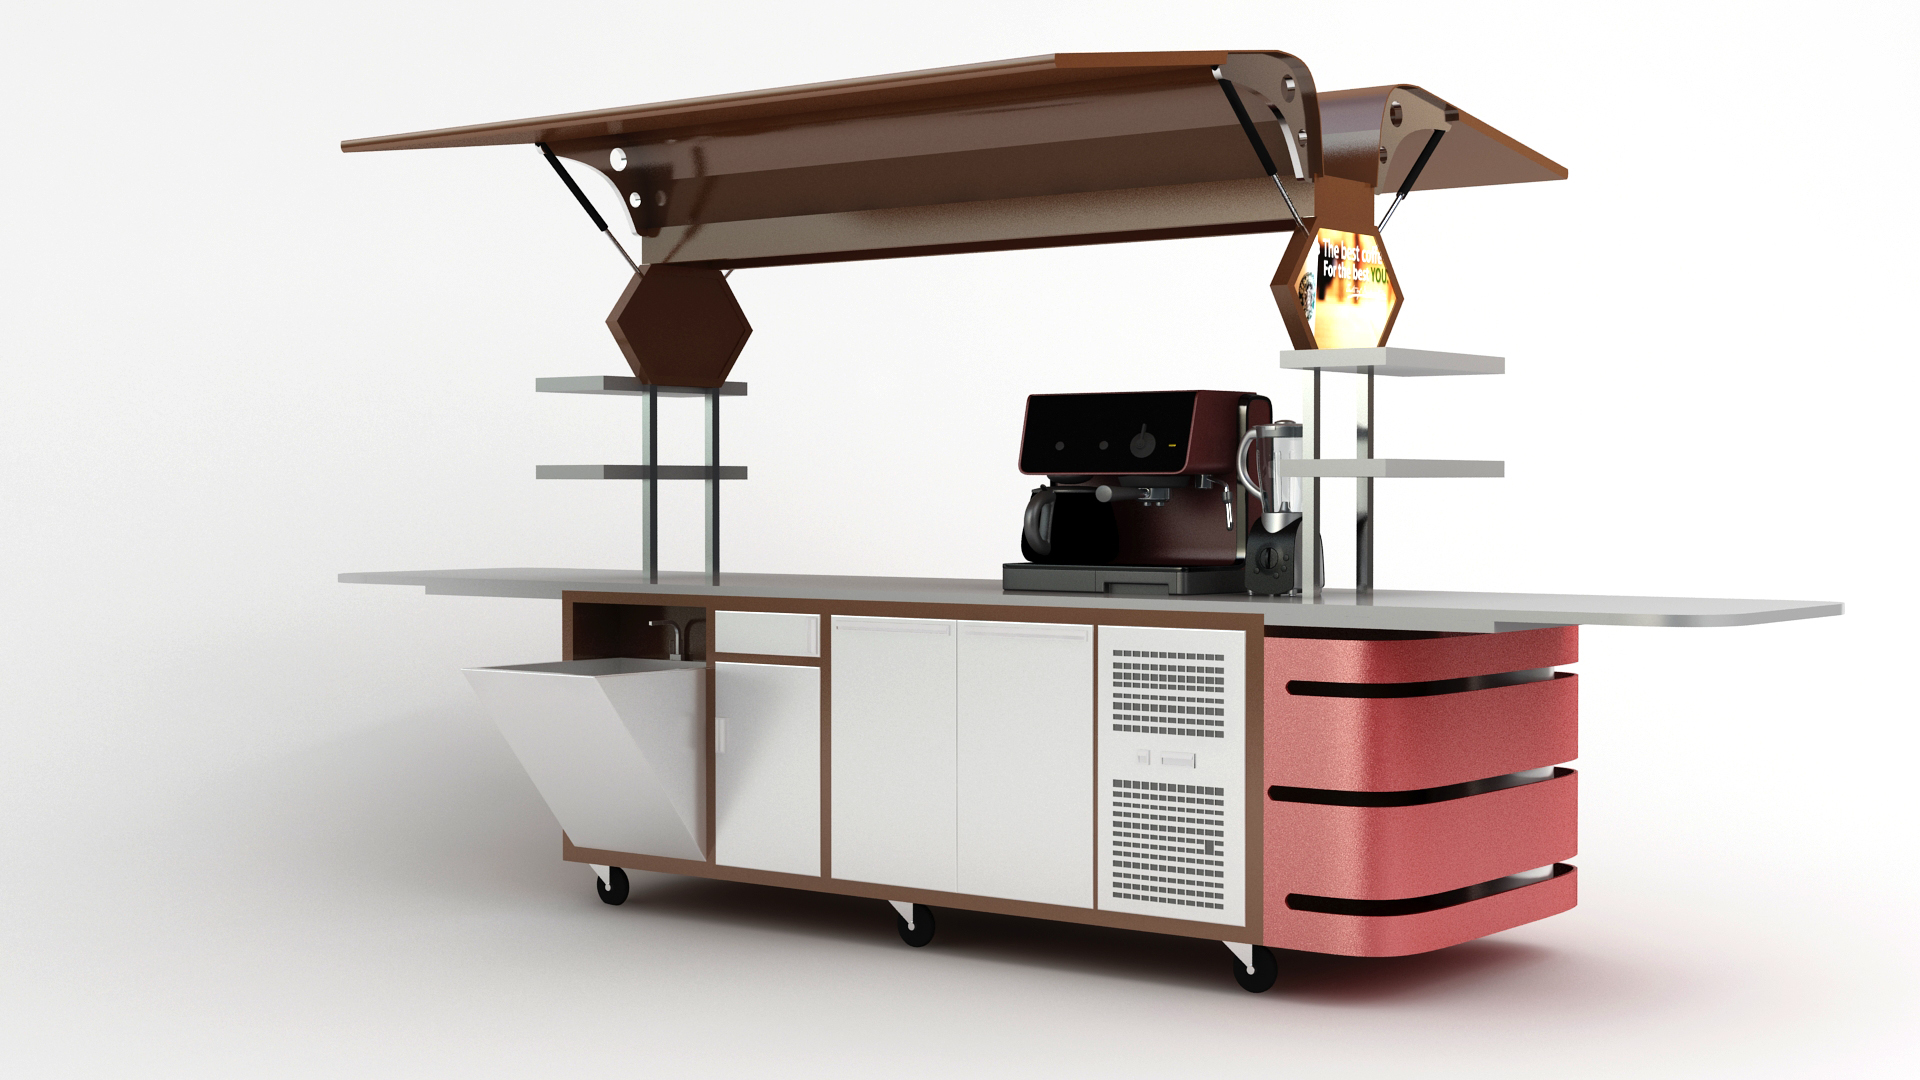 Large coffee carts x line closeable carts australia for Coffee cart design